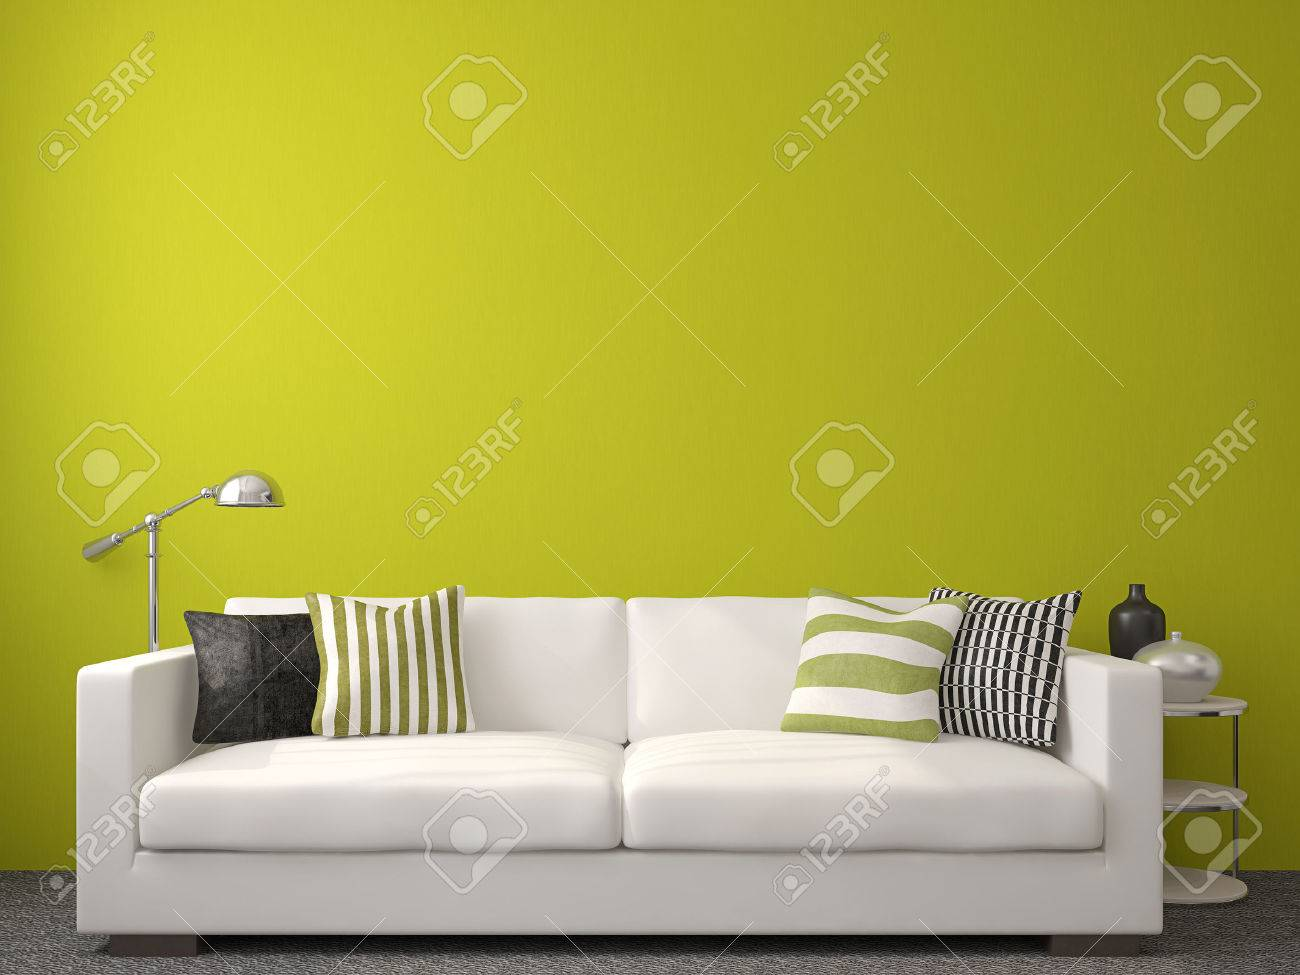 Modern living-room interior with white couch near empty green wall. 3d render. - 45647764